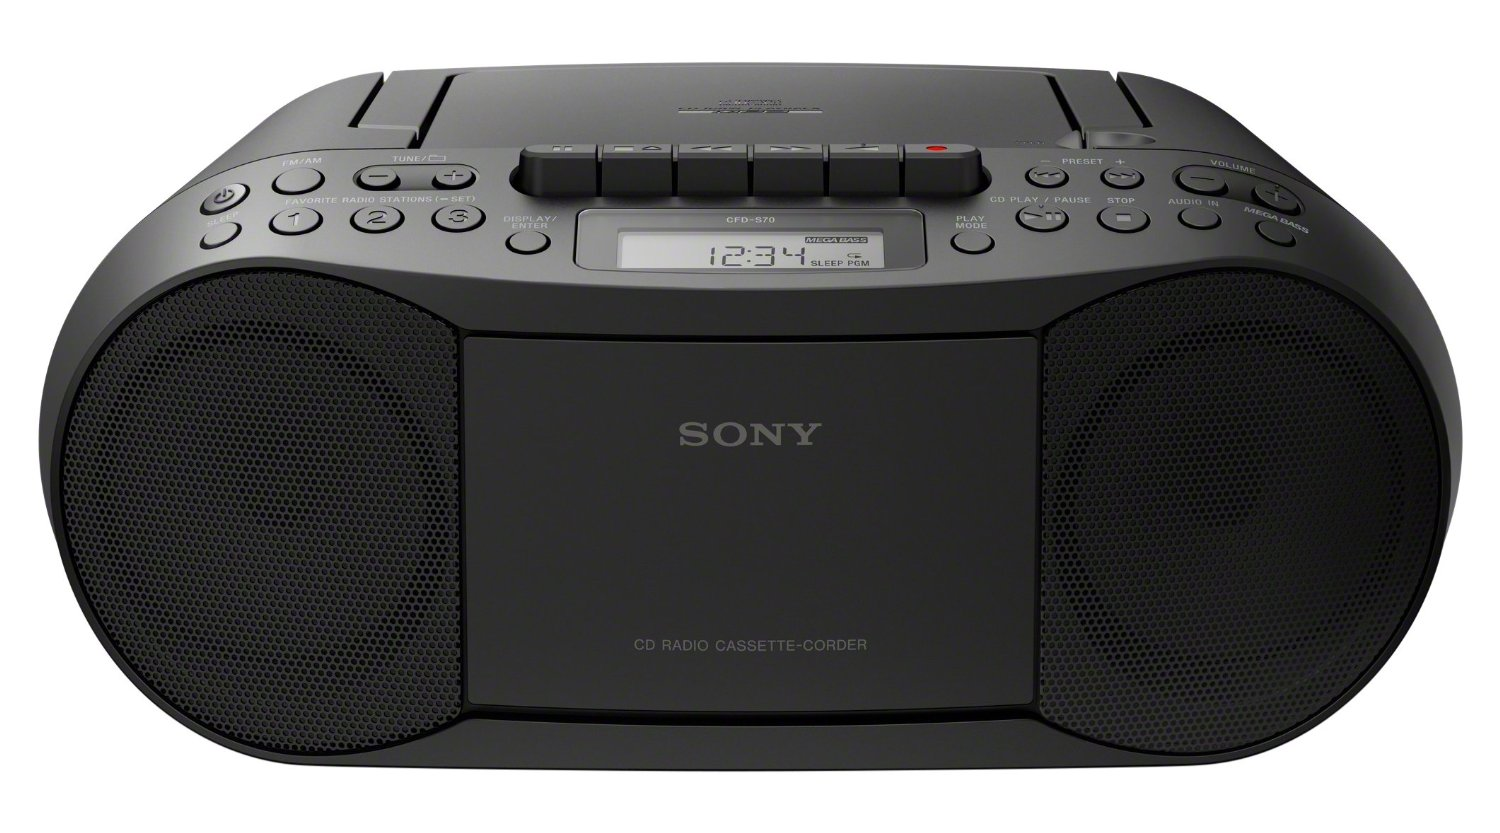 sony cfds70blk cd cassette boombox reviews soundspare. Black Bedroom Furniture Sets. Home Design Ideas